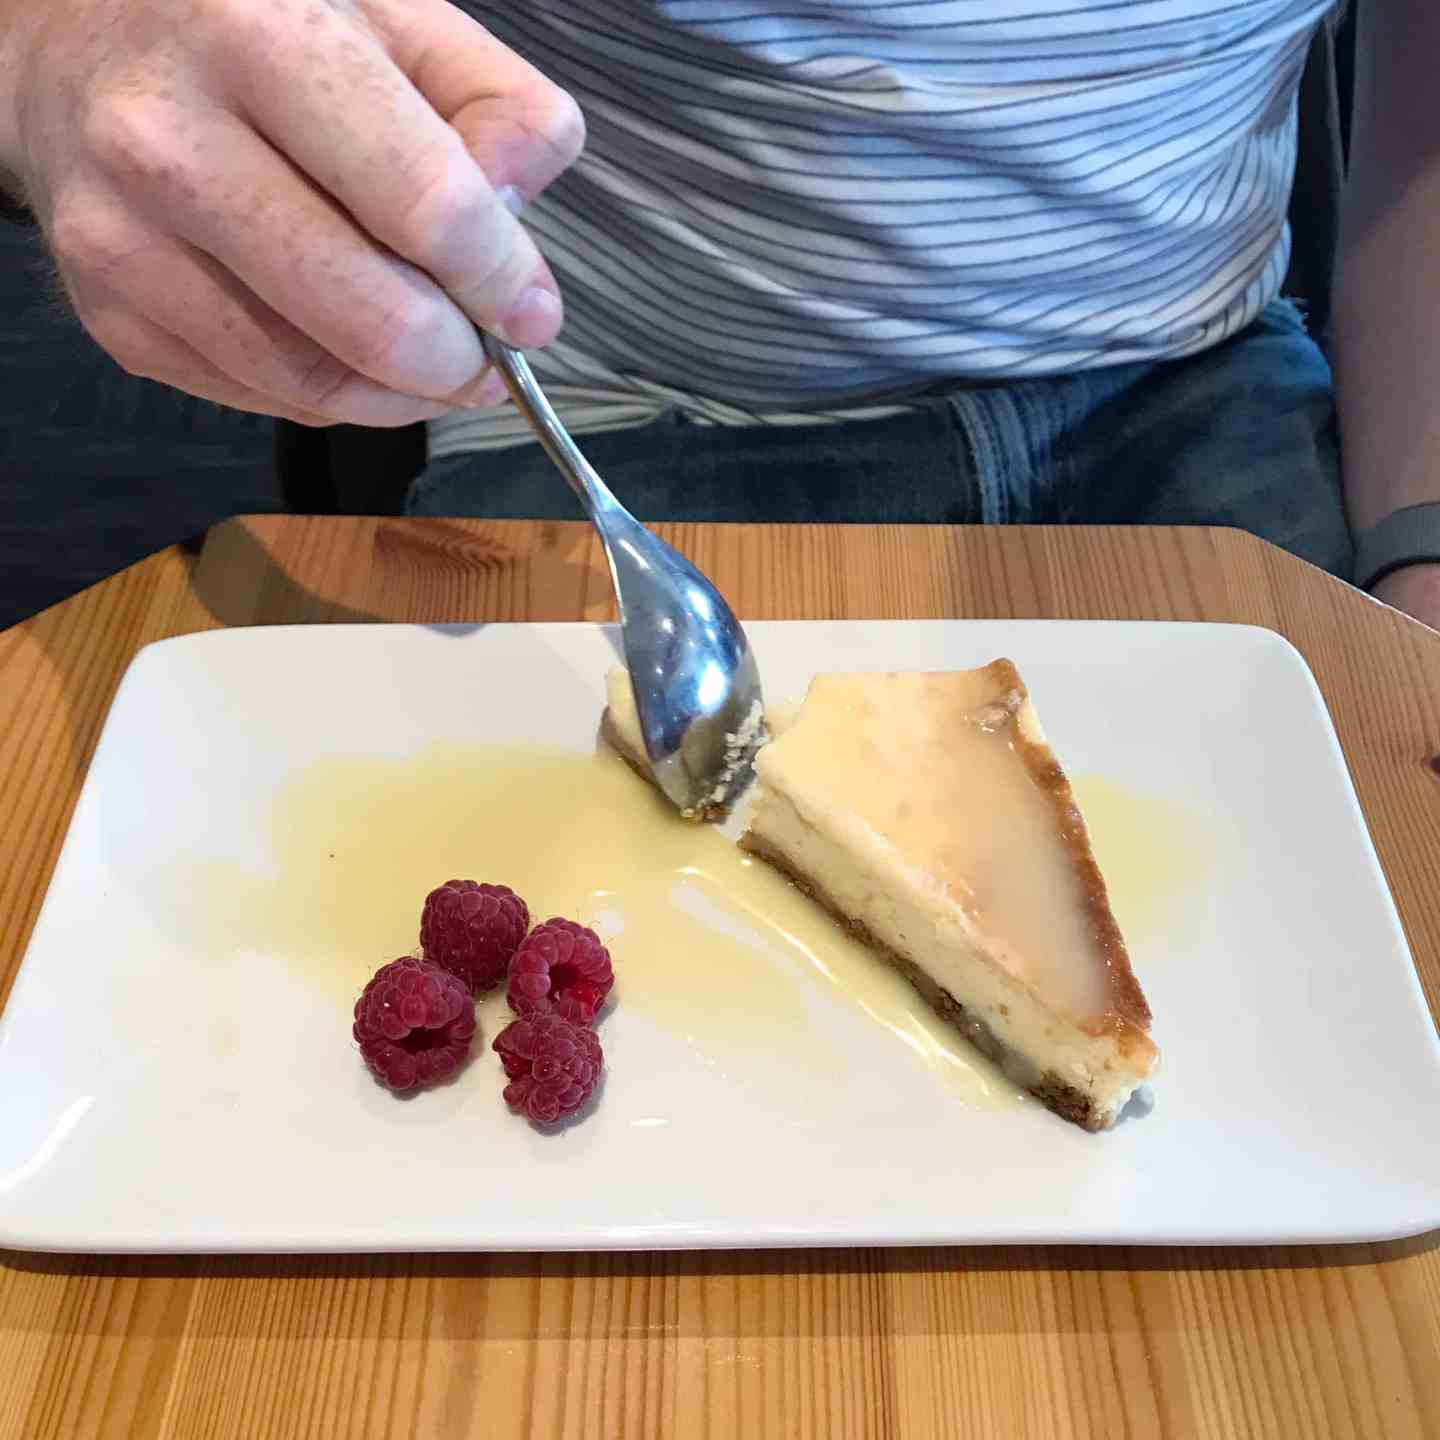 Lemon cheesecake from Woody's at Trevornick, near Newquay, Cornwall